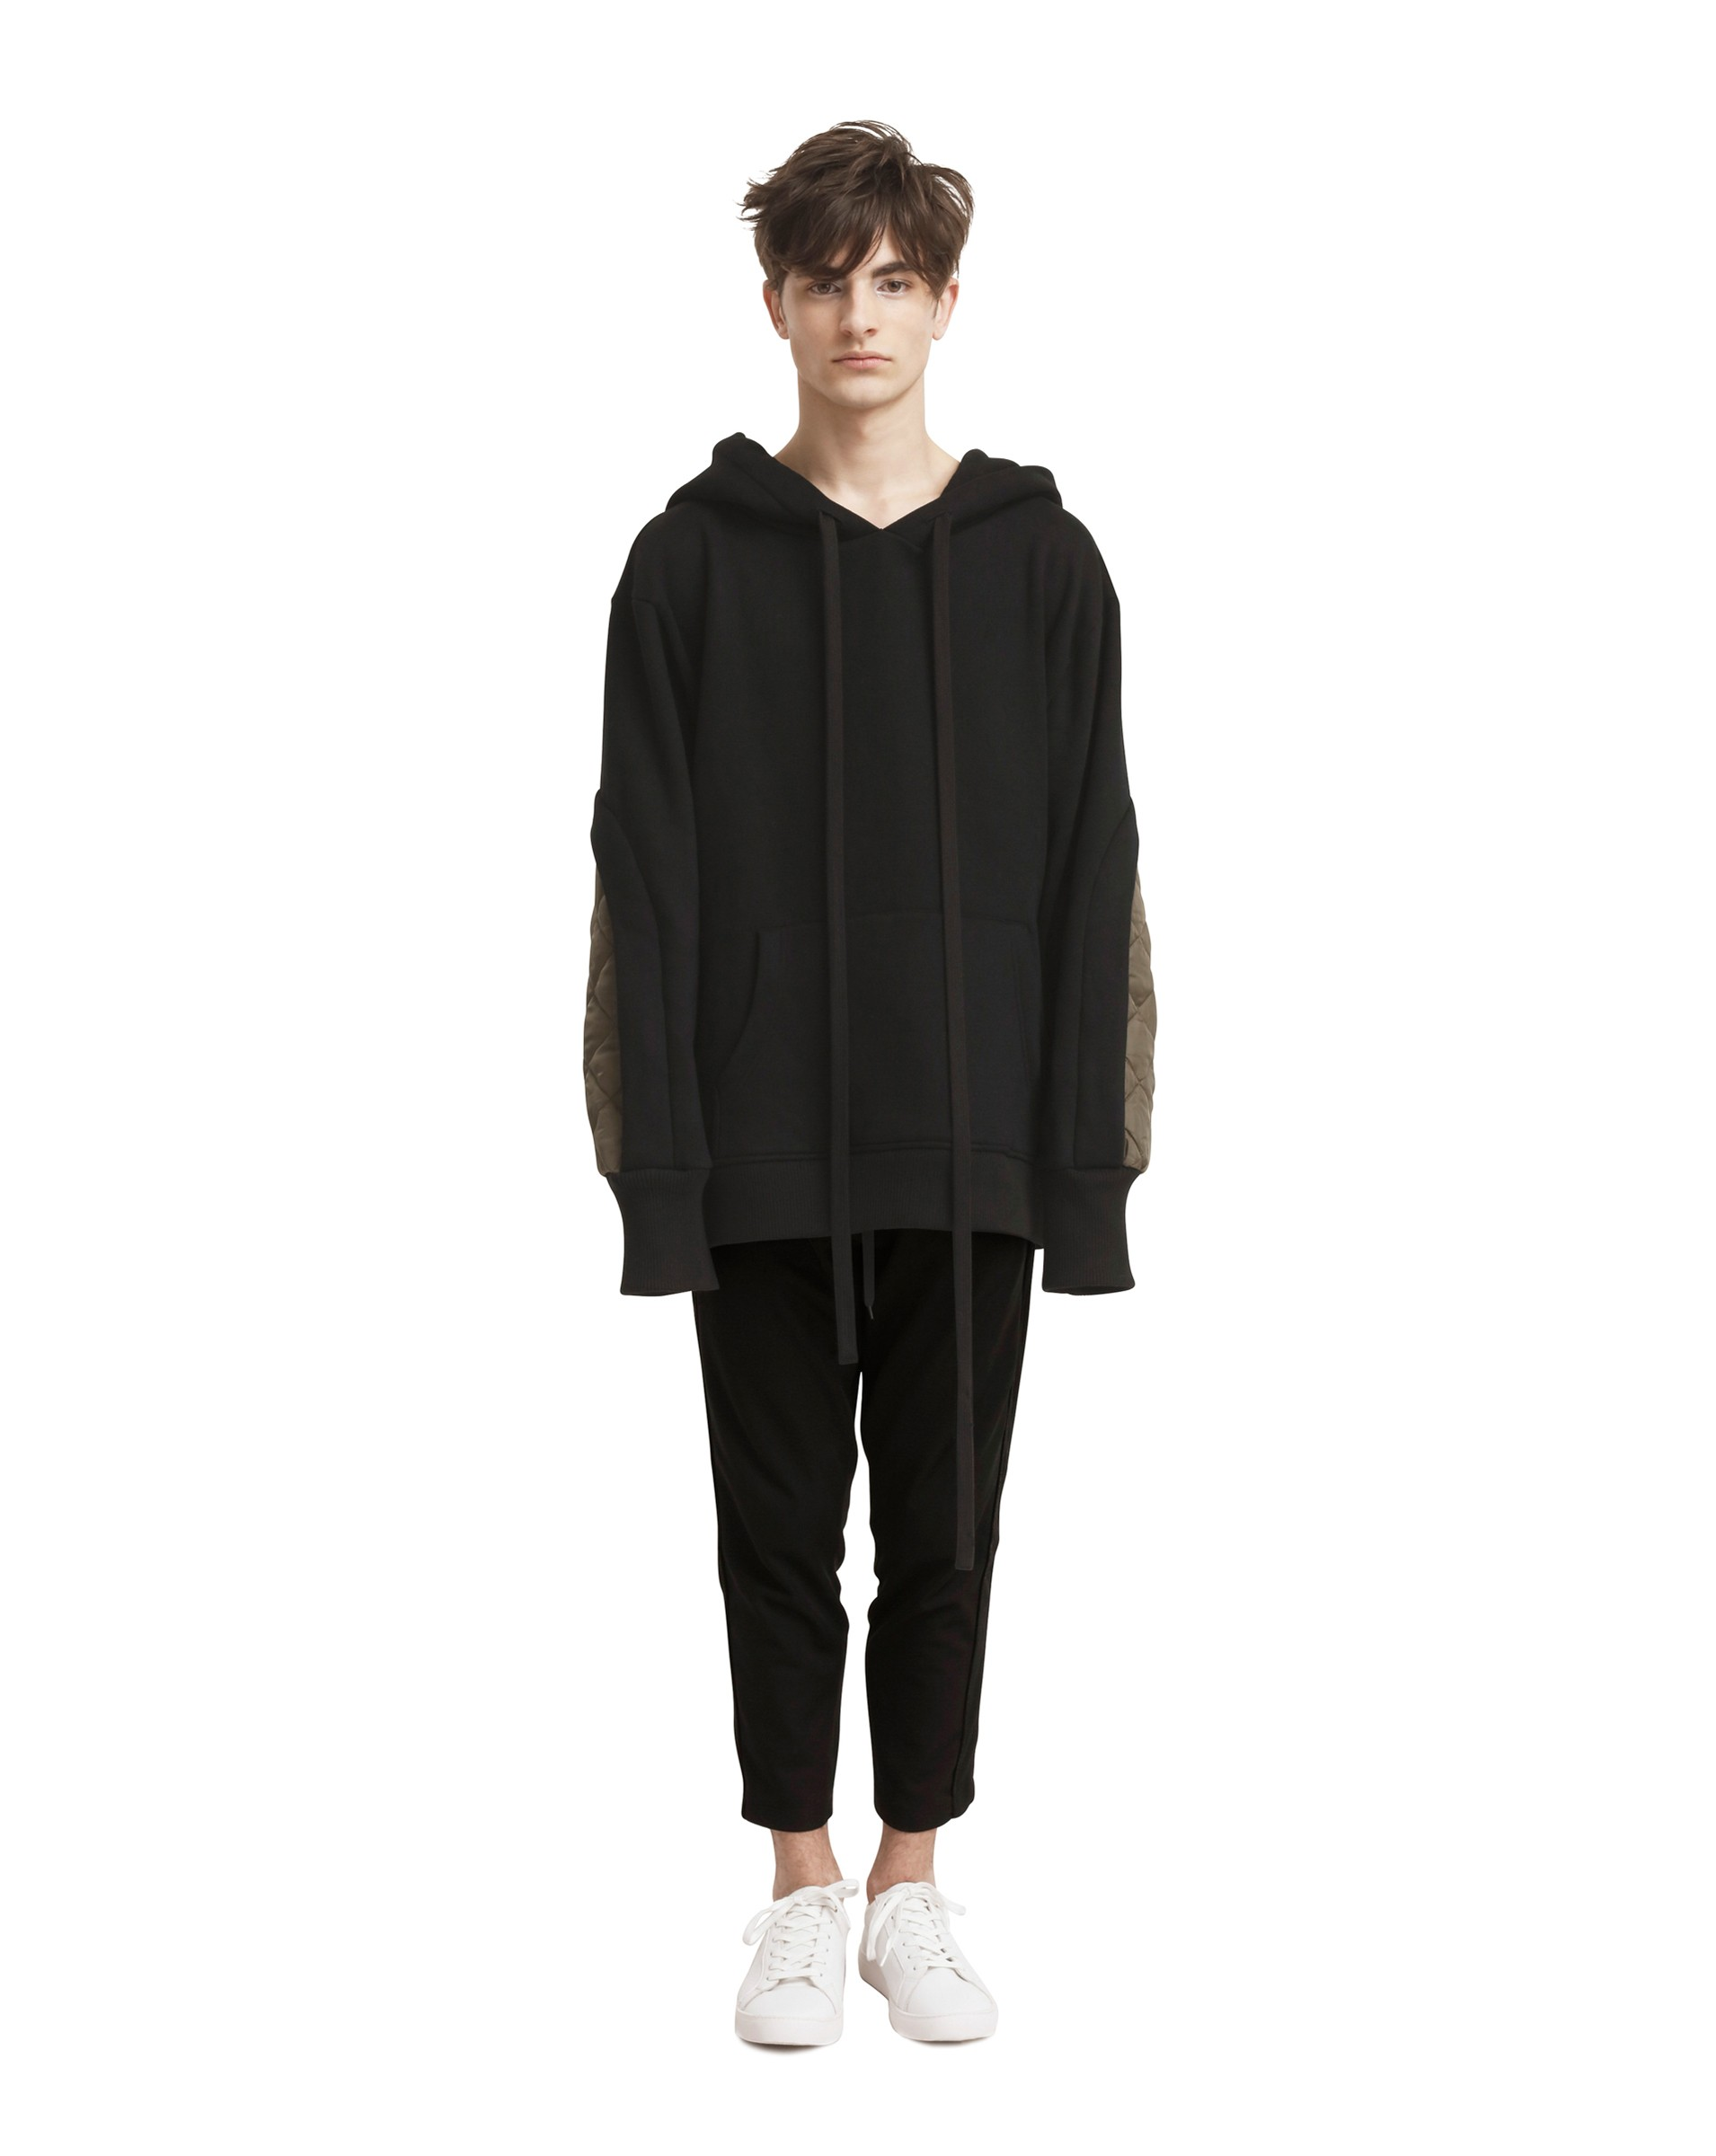 Contrast Quilted Patchwork Hoodie (Unisex)